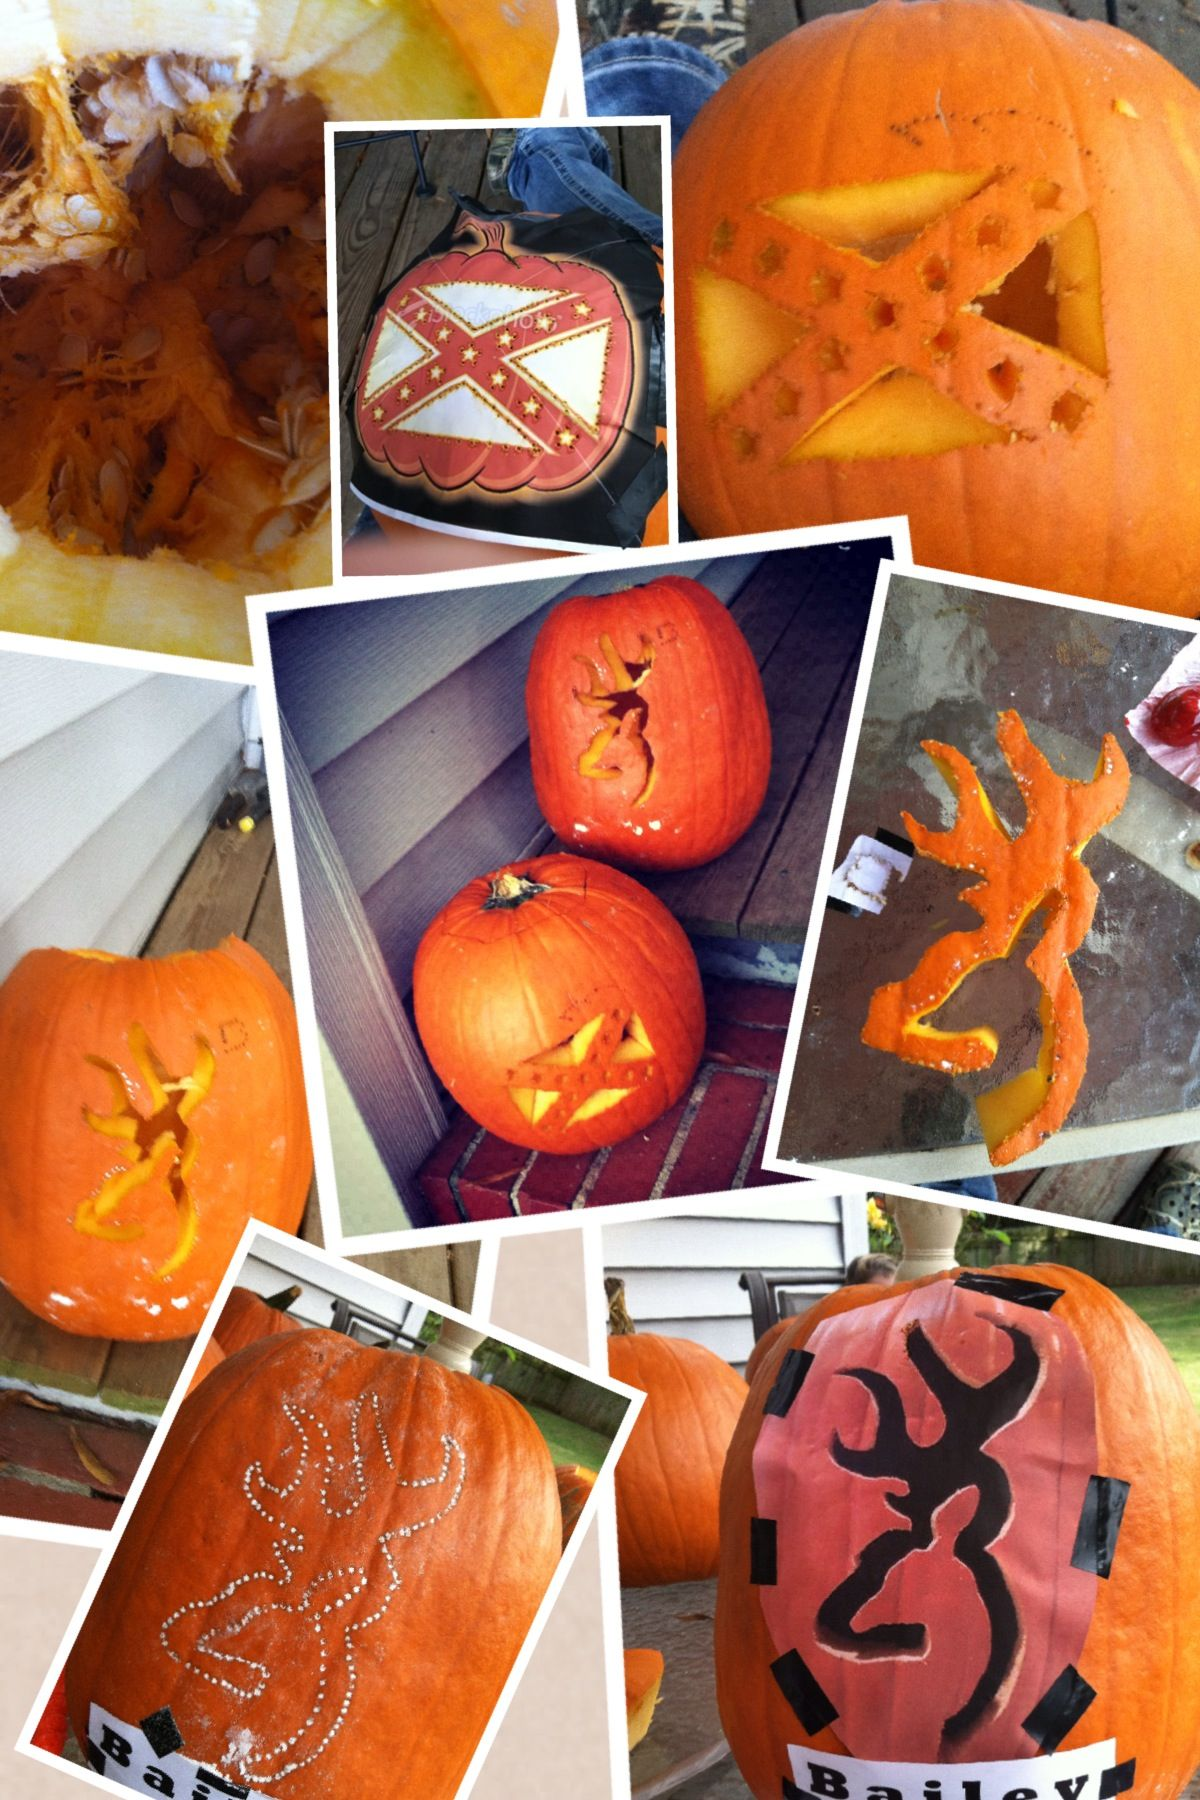 Browning and rebel flag pumpkins | It's a southern thing ...